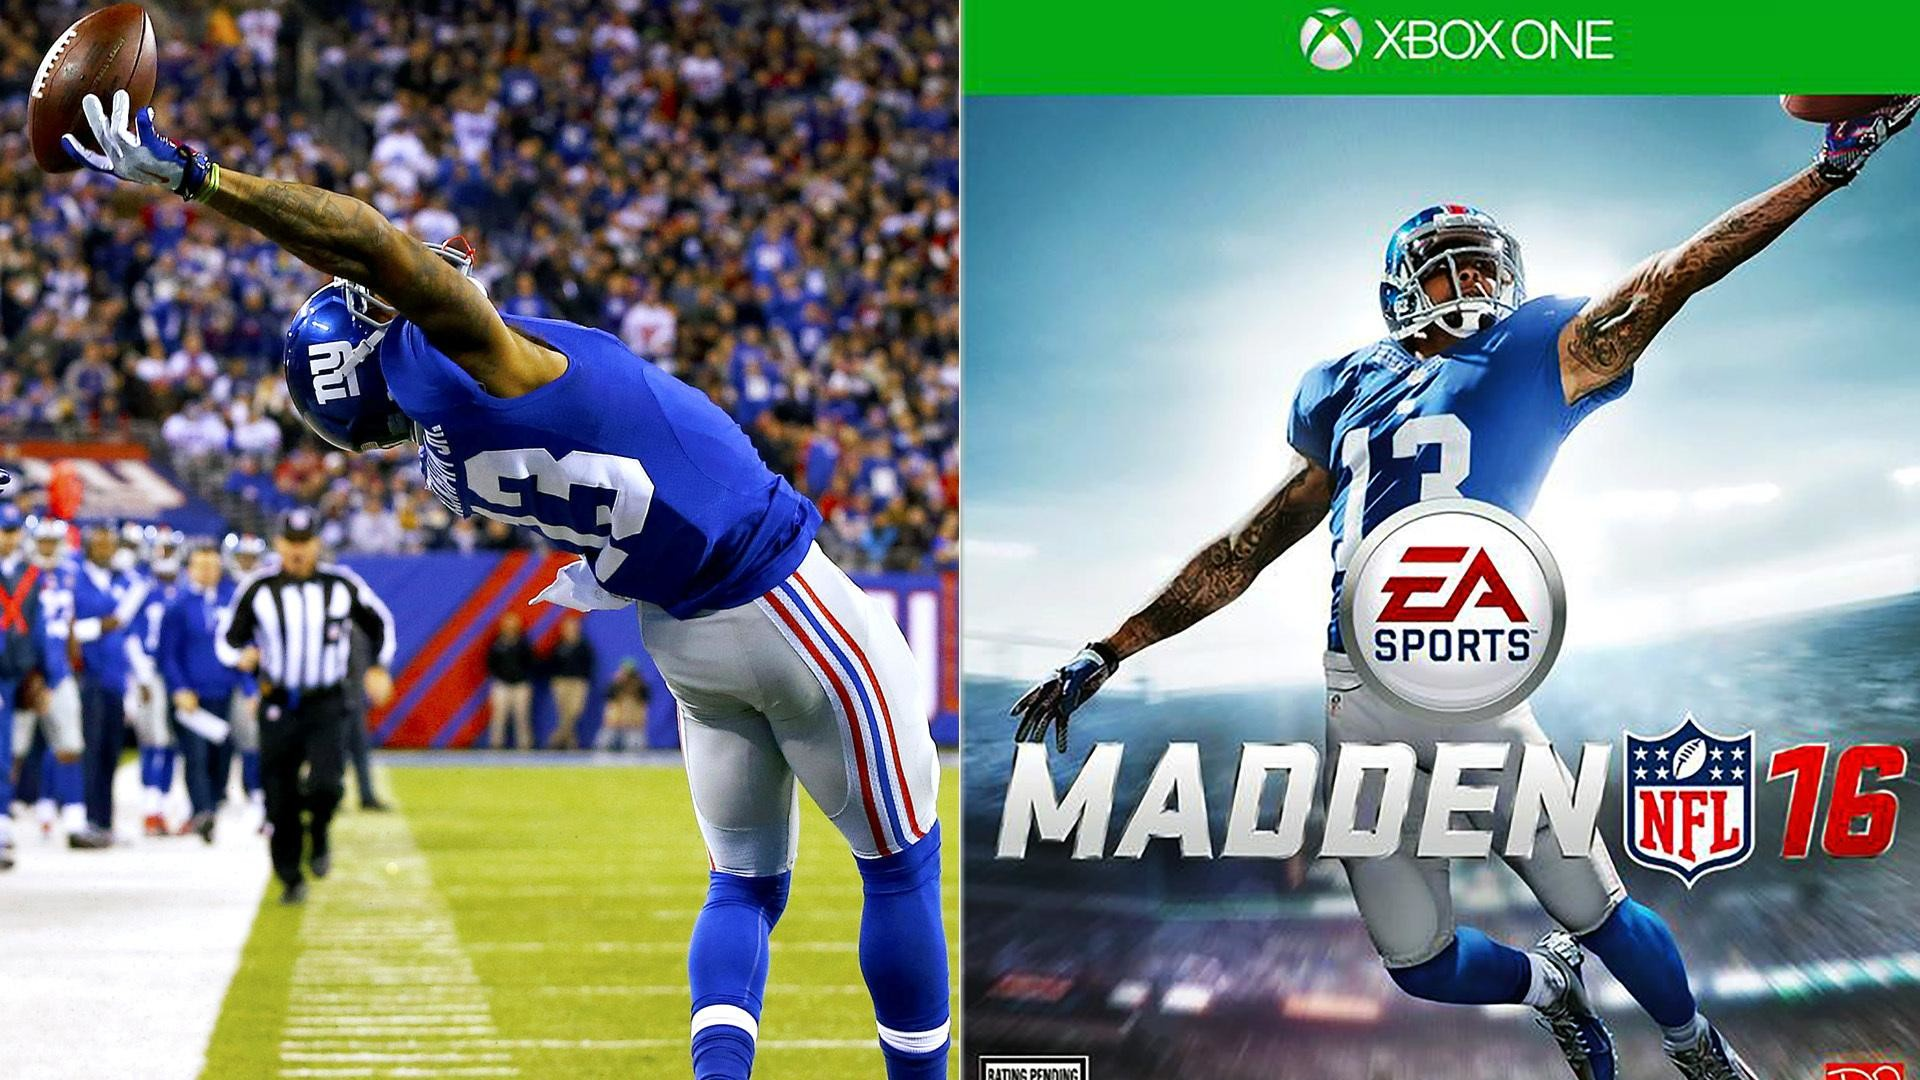 Odell Beckham Jr. Makes Another One-Handed Catch in Madden 16 Trailer –  Video Dailymotion